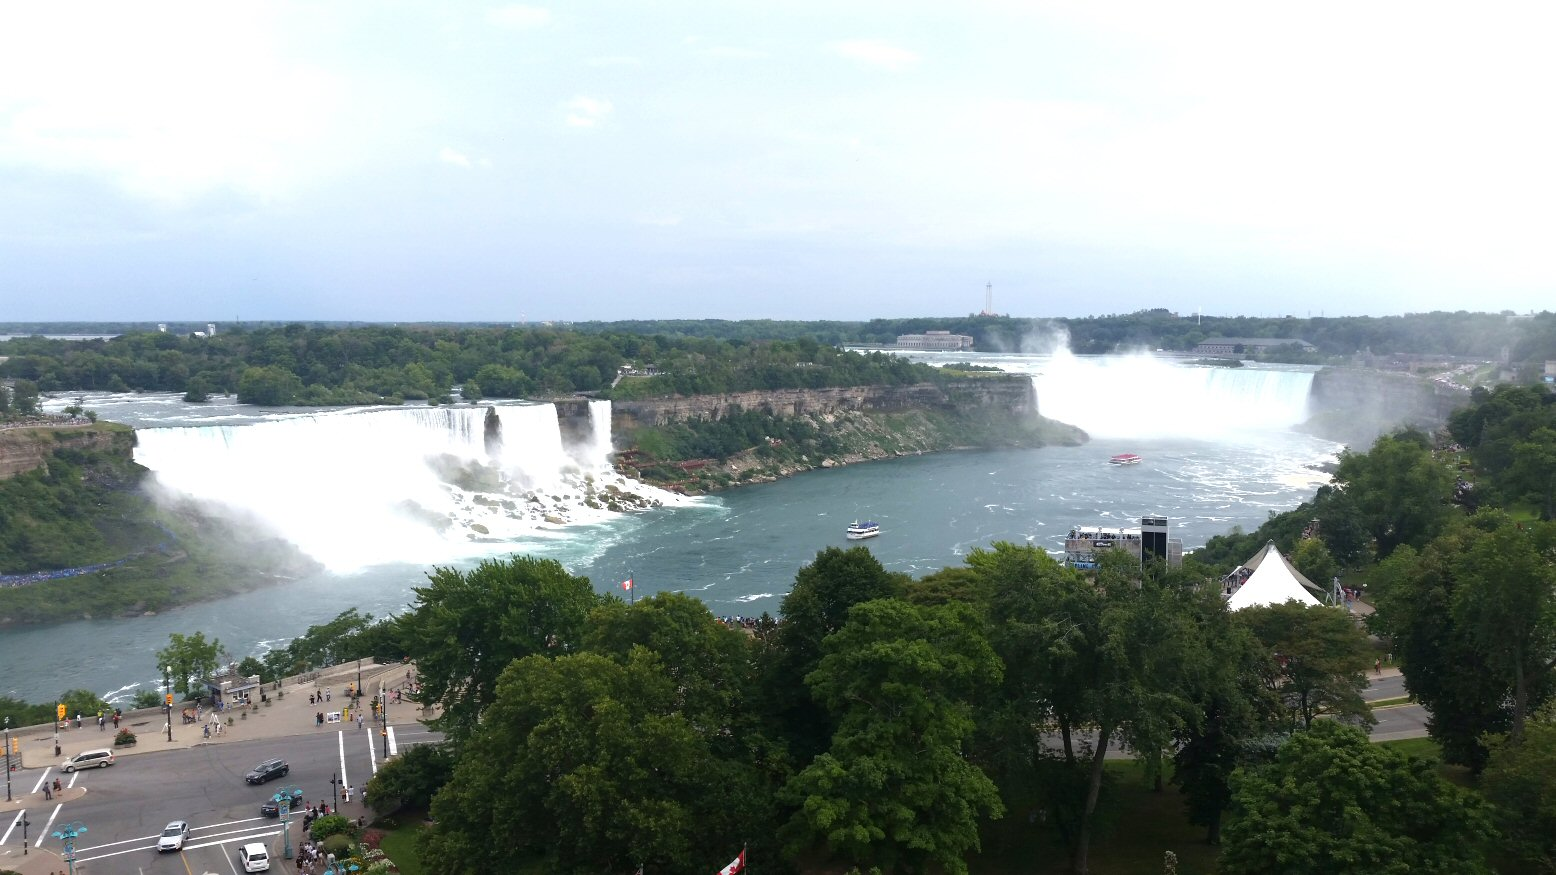 Niagara Falls viewed from the Fallsview Restaurant at the Sheraton Hotel